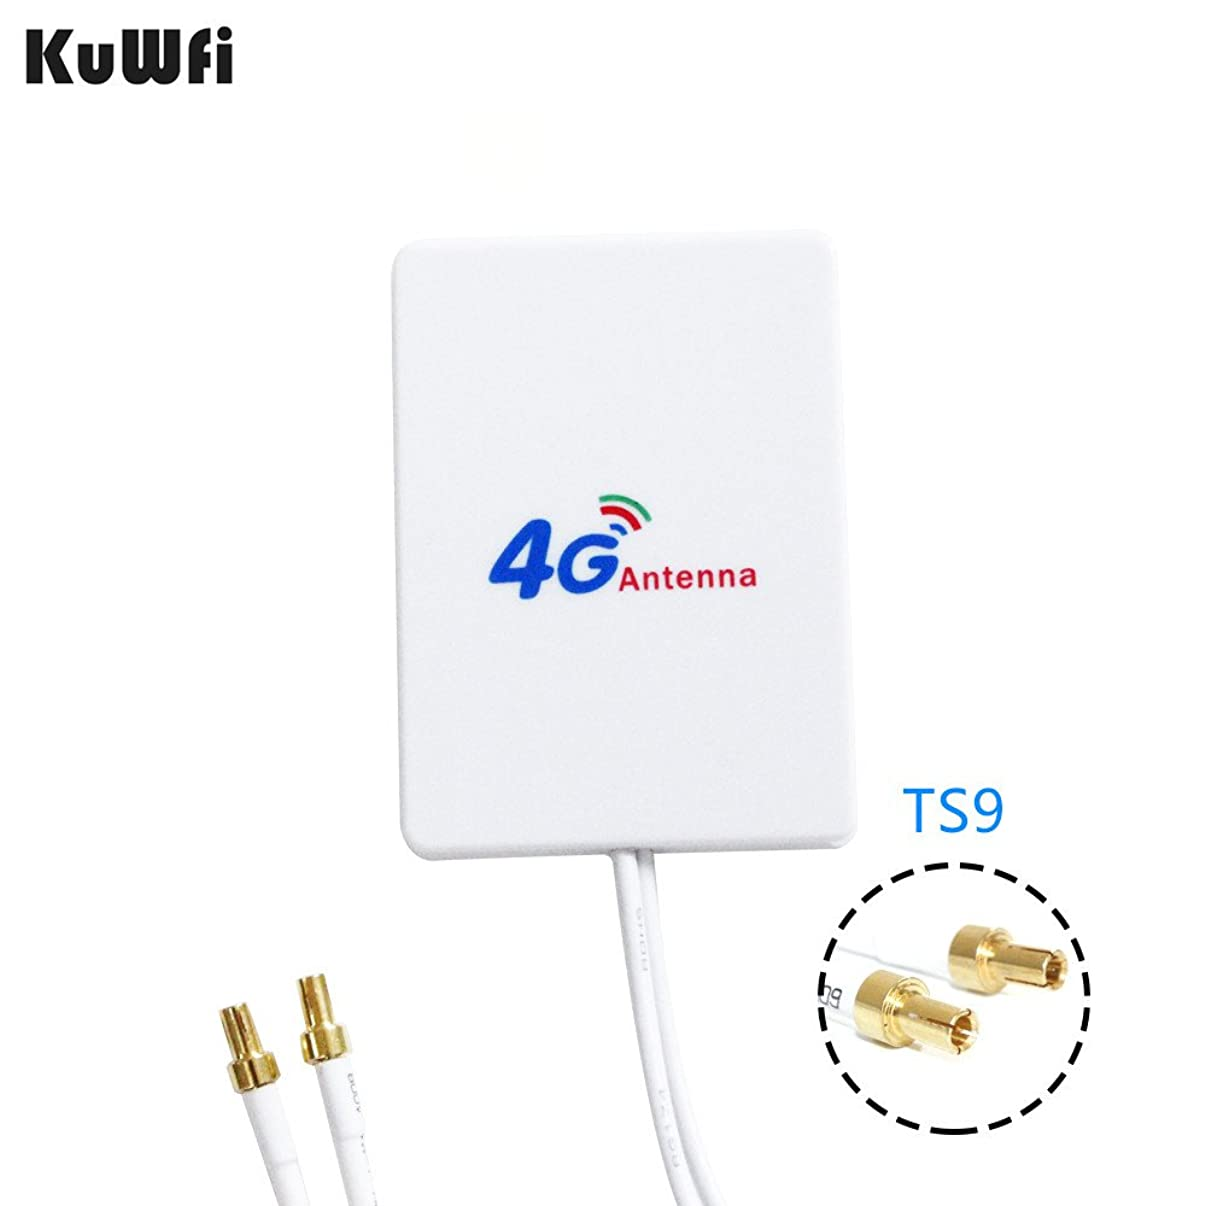 KuWFi 3G 4G LTE Antenna TS9 Connector 4G LTE Router Anetnna 3G External Antenna with 3m Cable for 3G 4G LTE Router Booster Strong Signal